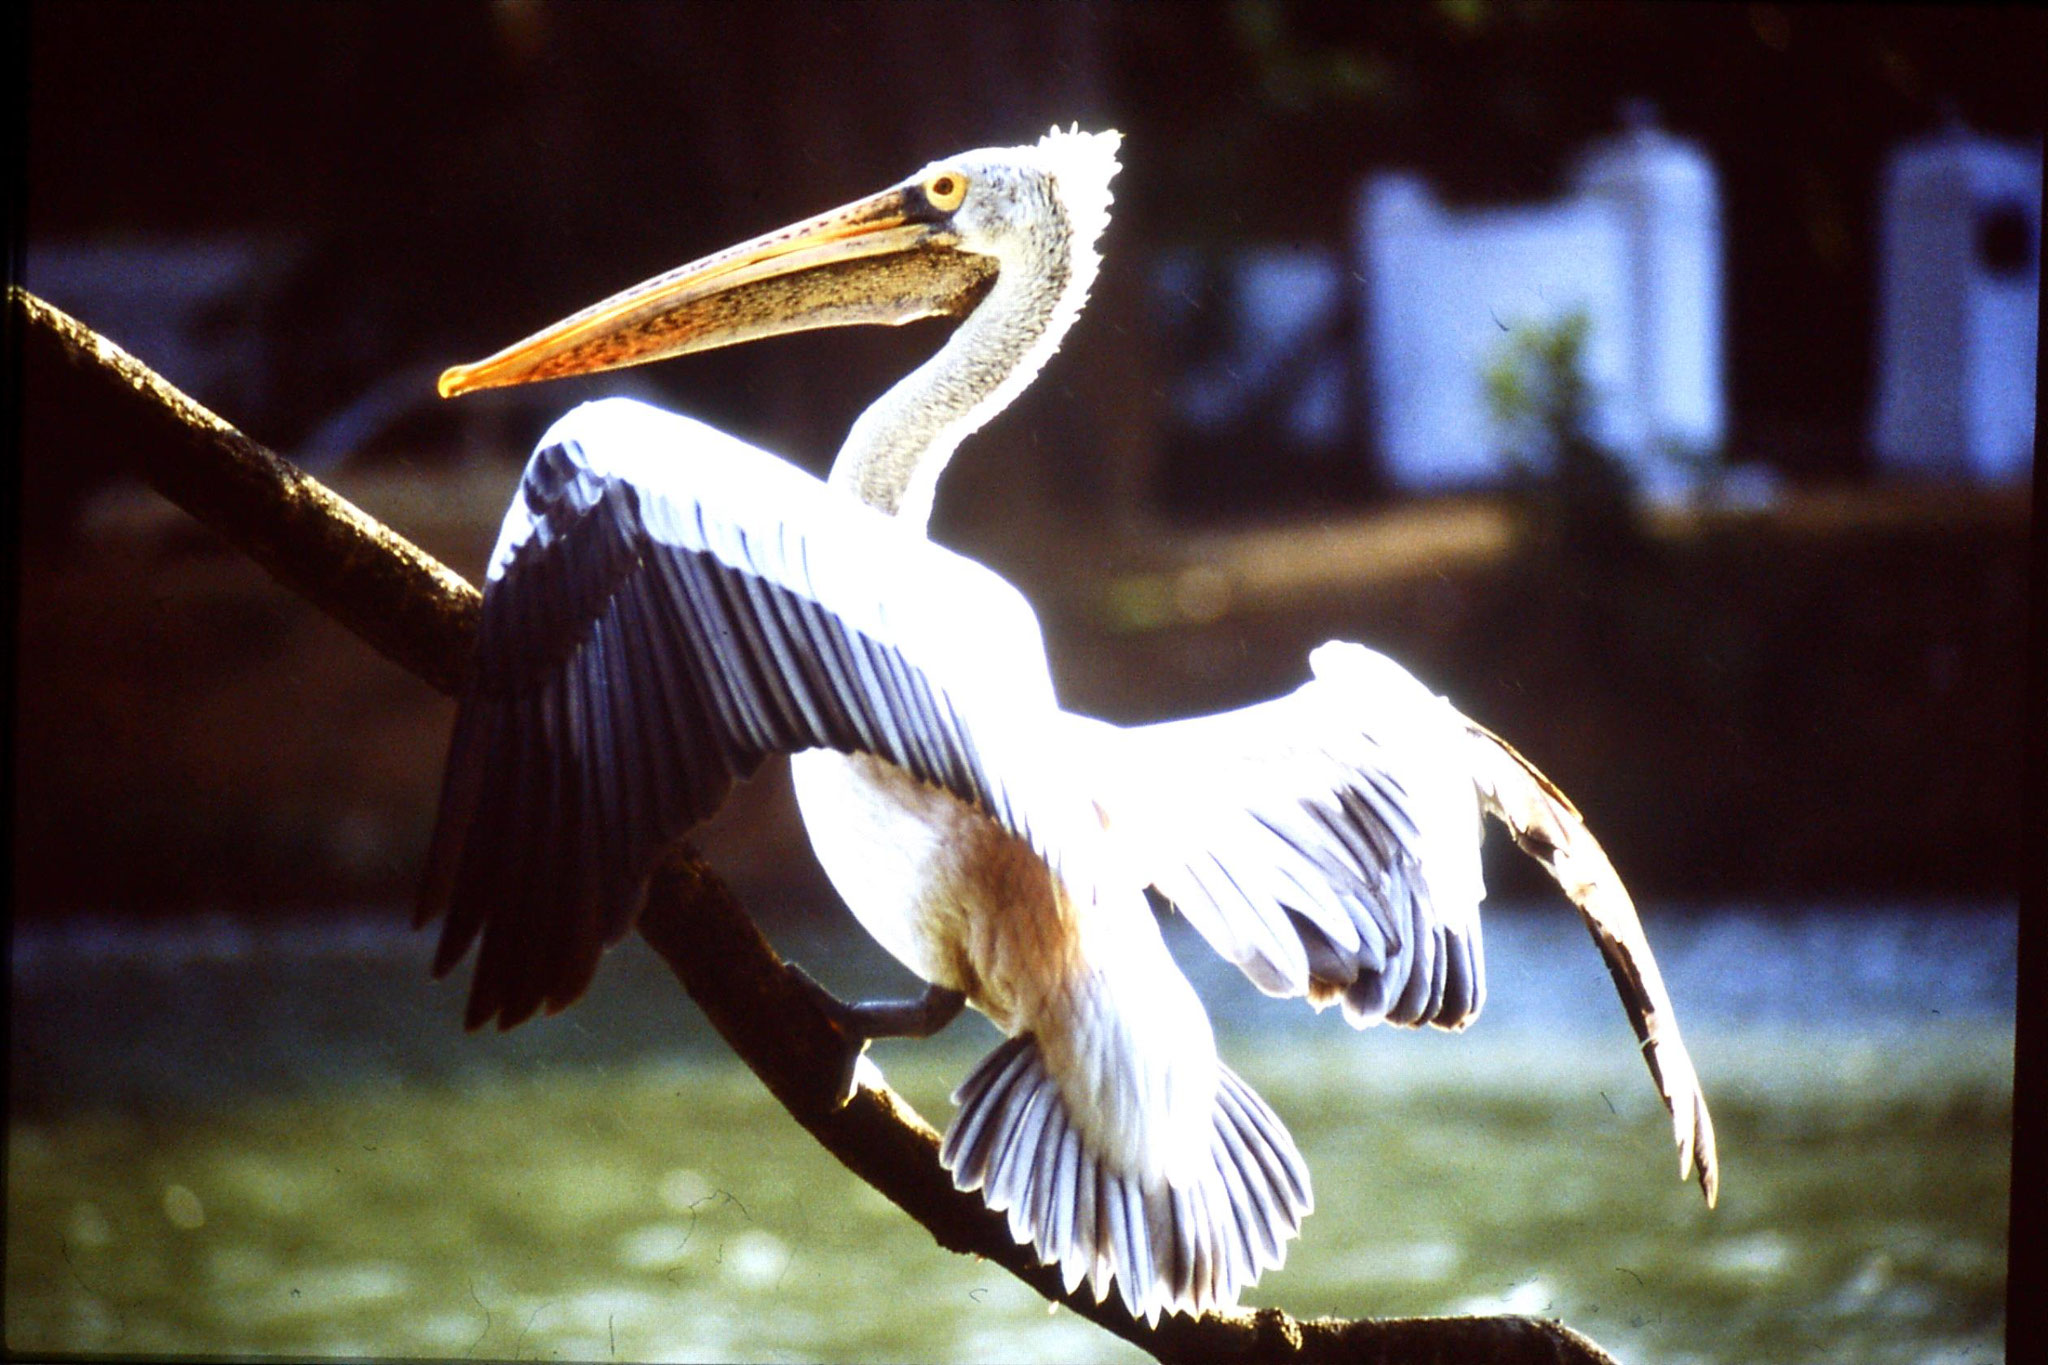 4/2/1990: 15: Kandy Lake pelican